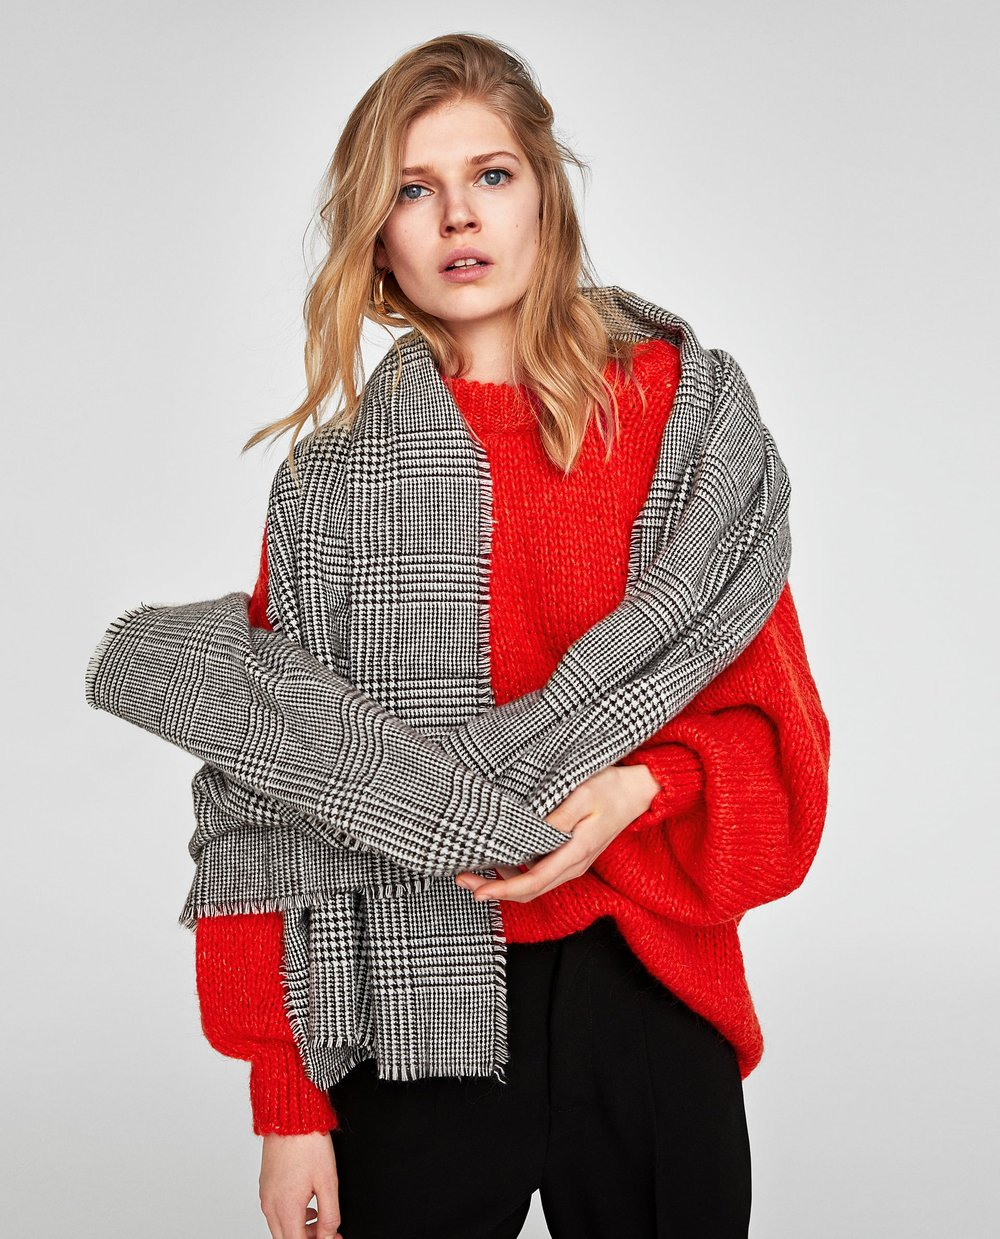 Things have gotten rather chilly in the city of dreaming spires; wrap up warm with our favourite affordable scarves. - wrap me up.